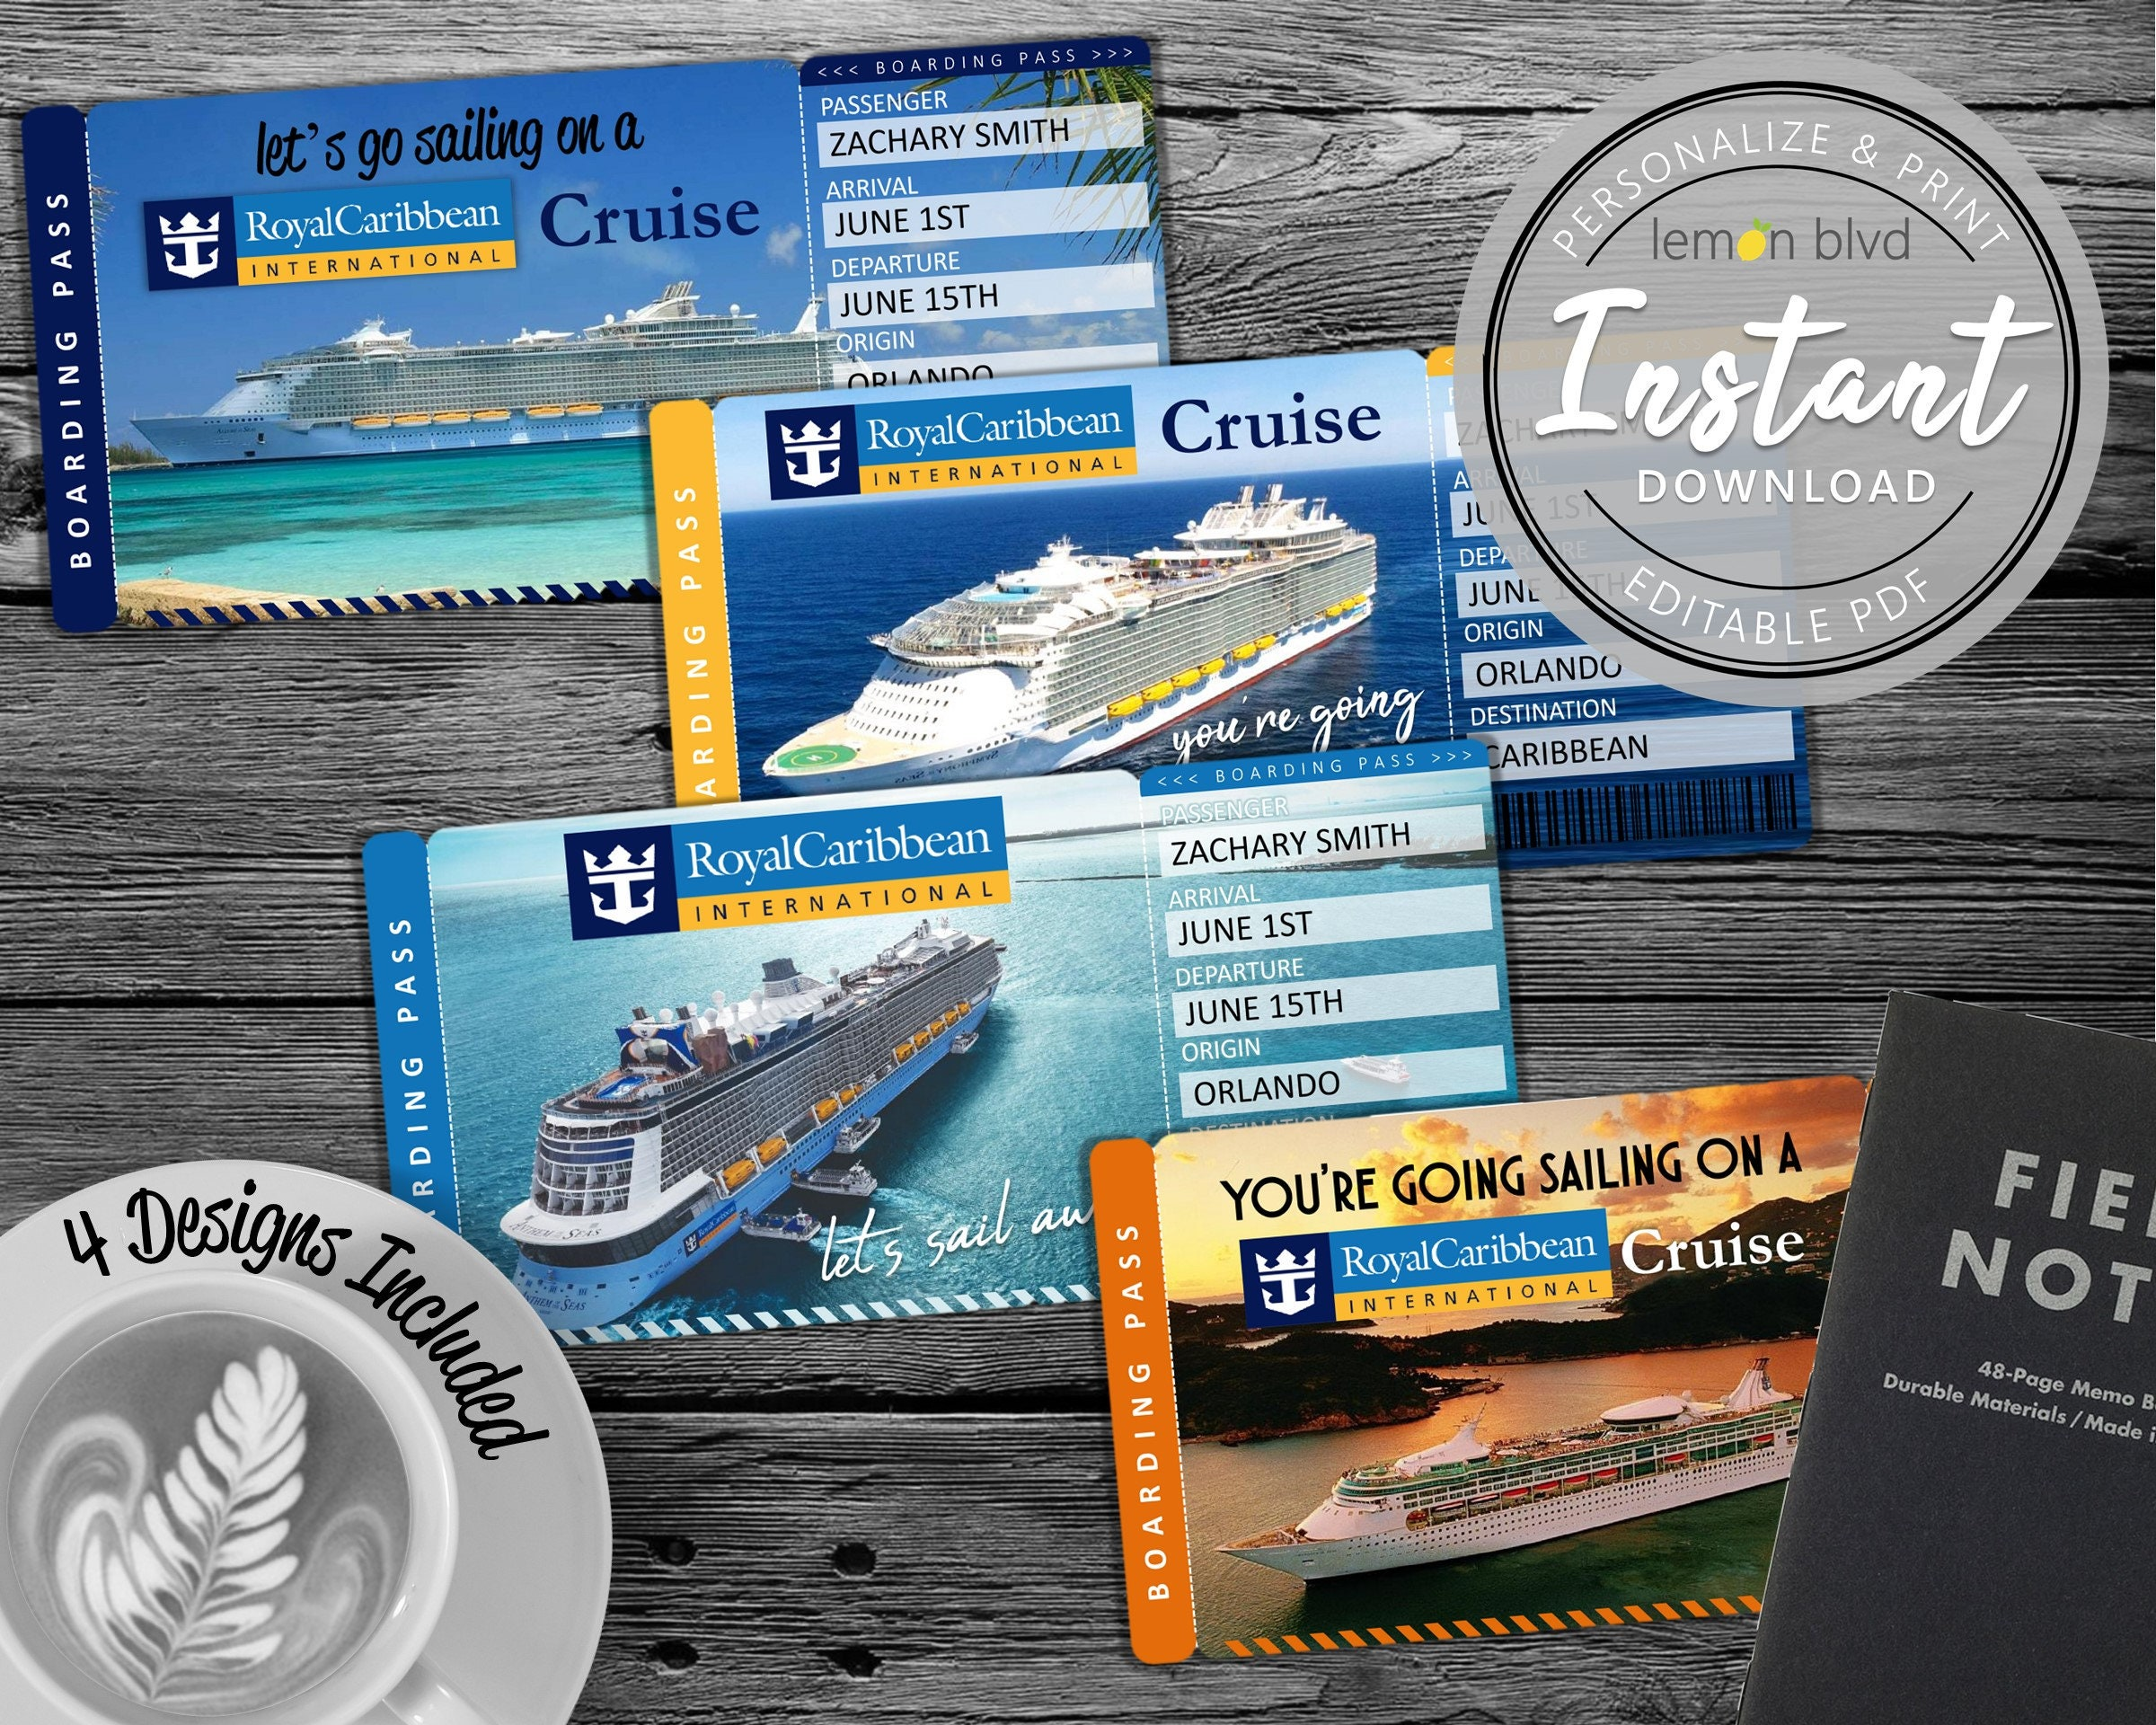 Royal Caribbean Cruise Tickets Cruise Ticket Download Etsy